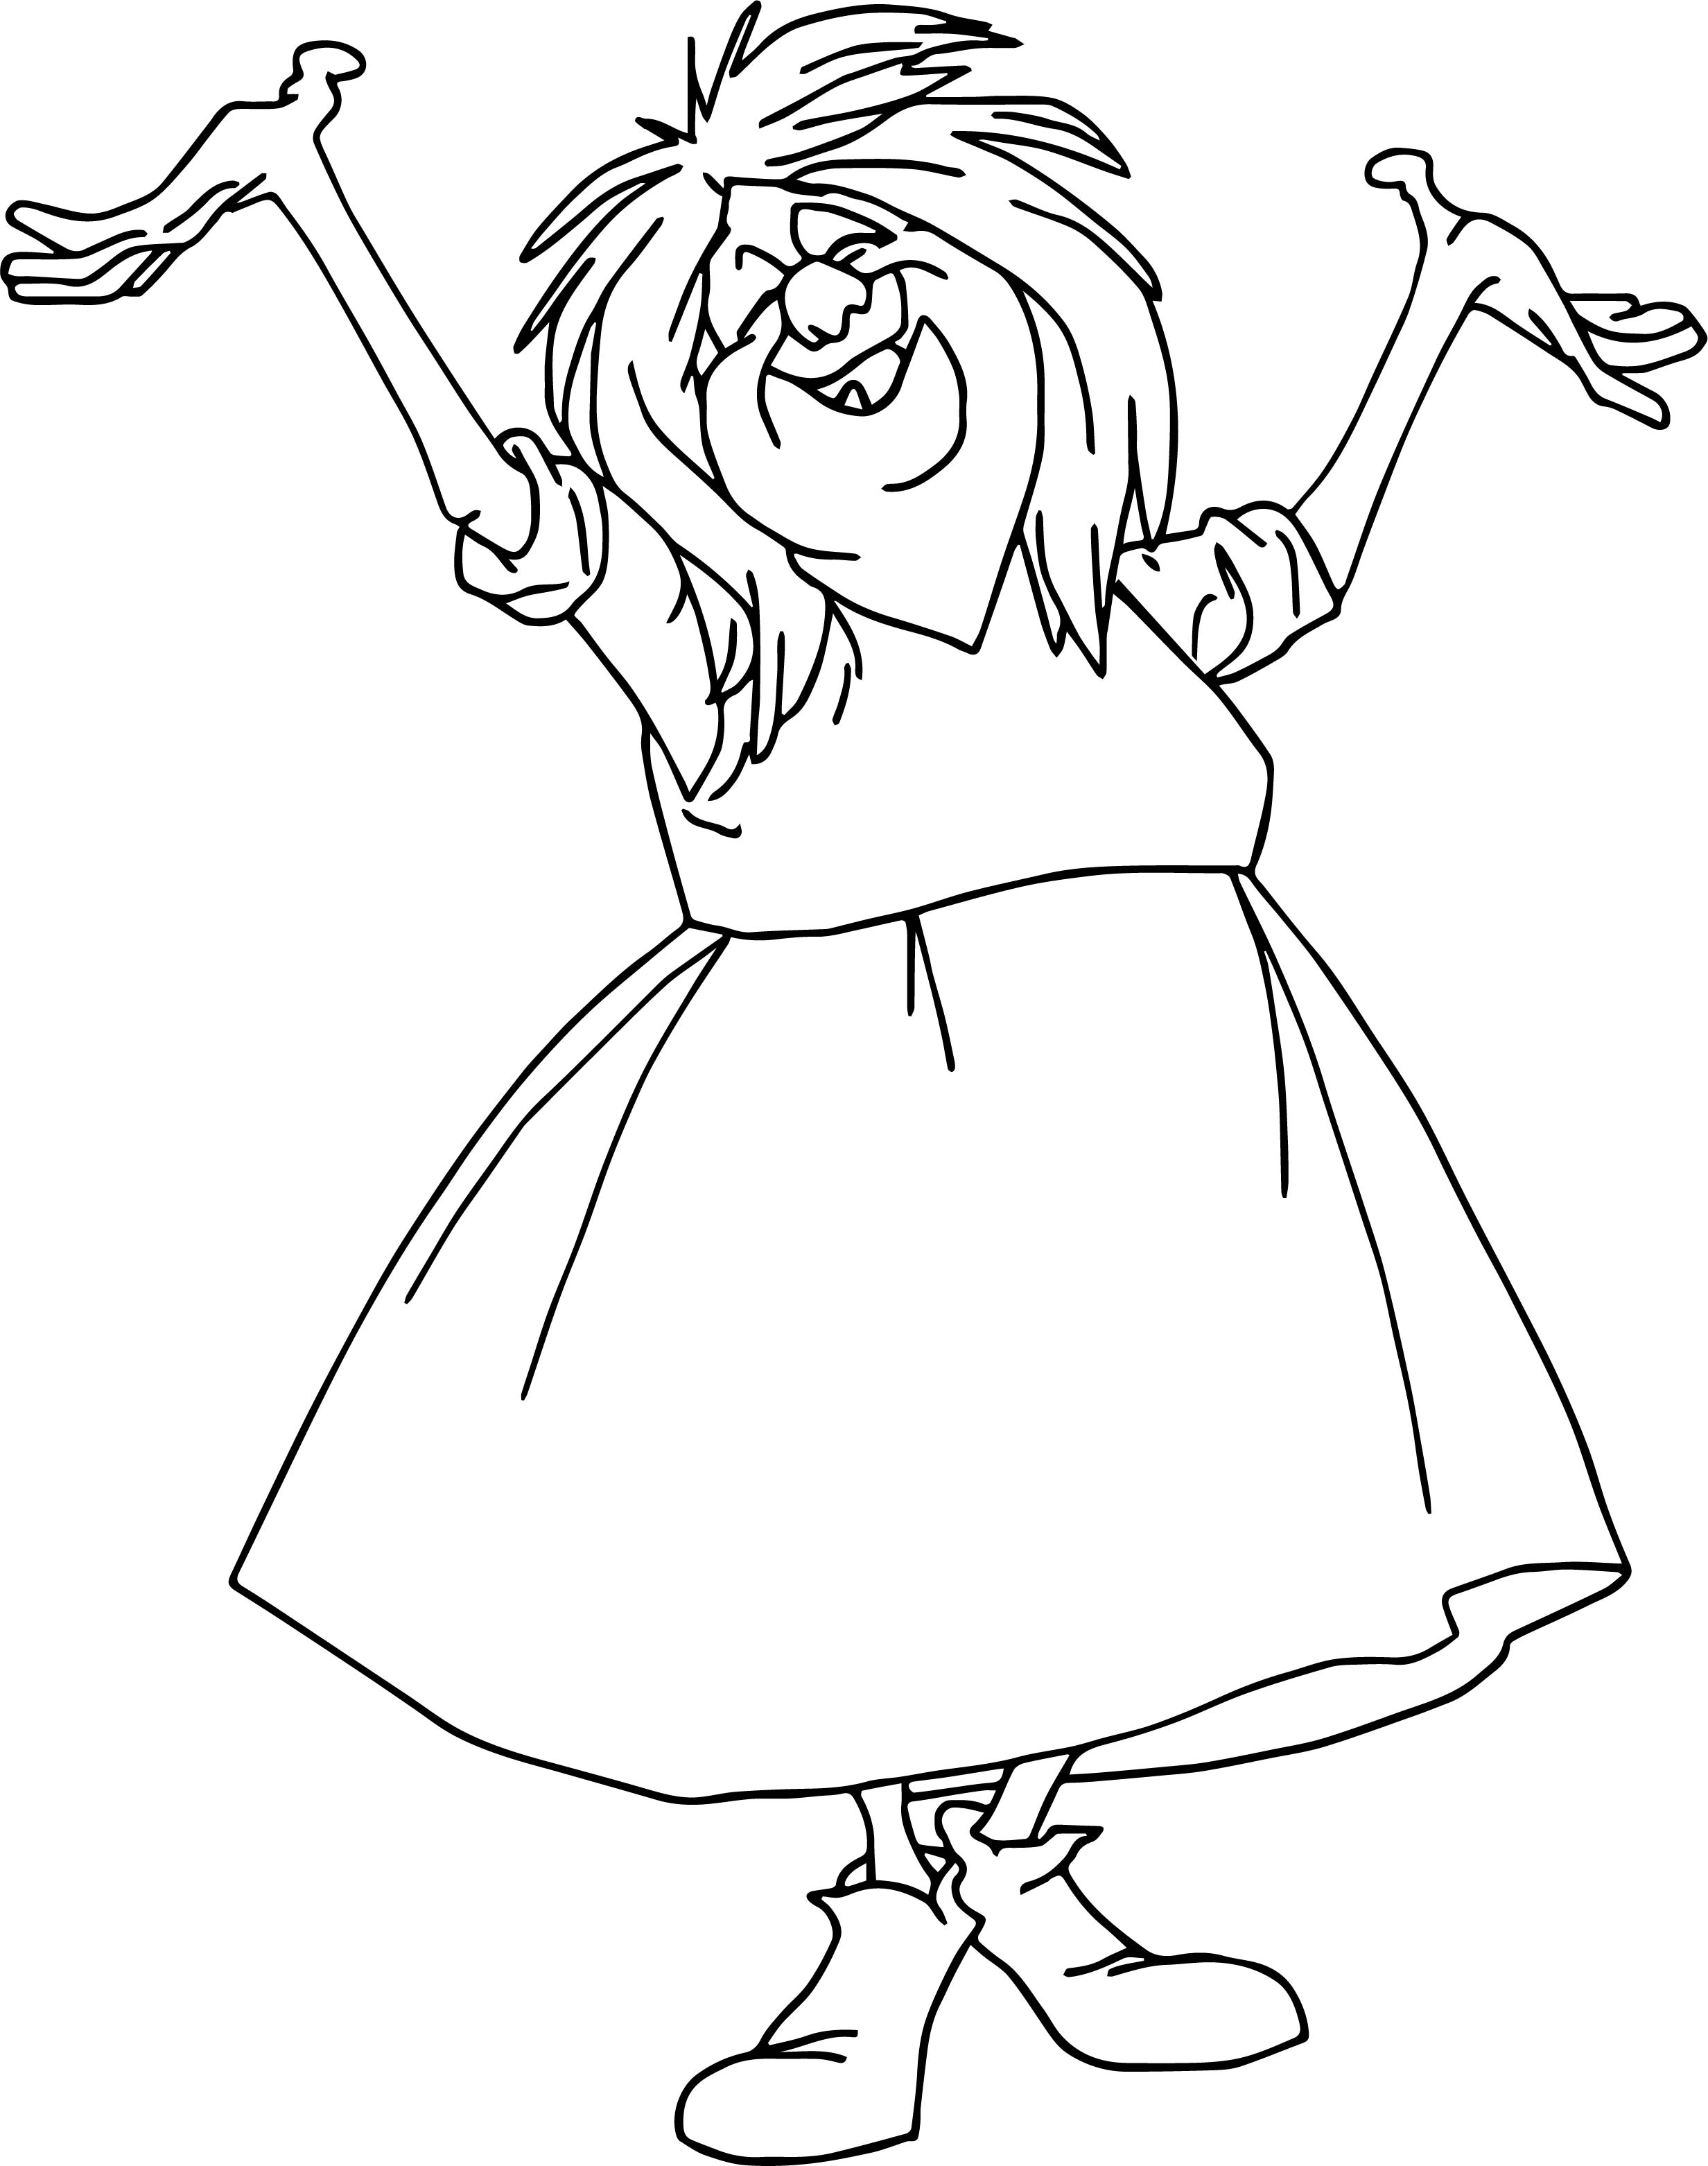 doodlebops printable coloring pages - photo#27